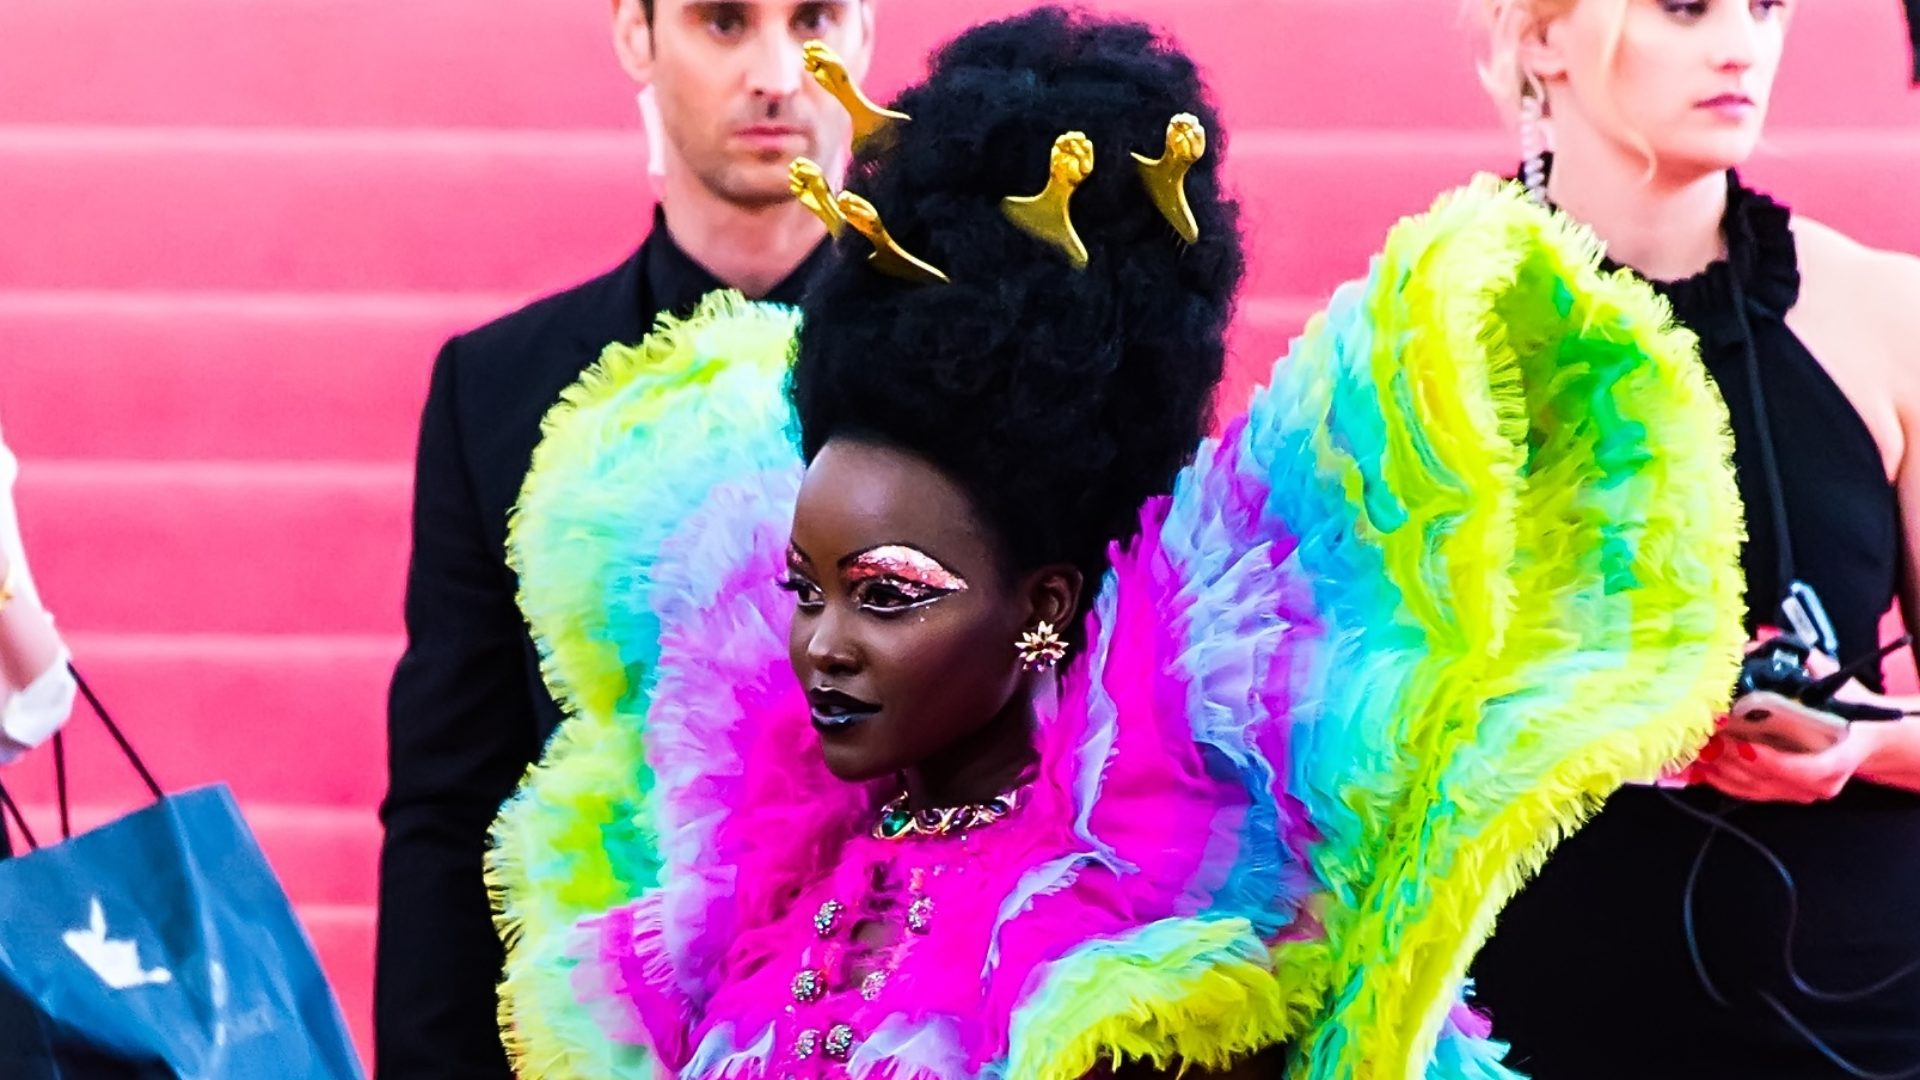 The Met Gala Theme For Next Year Has Been Revealed